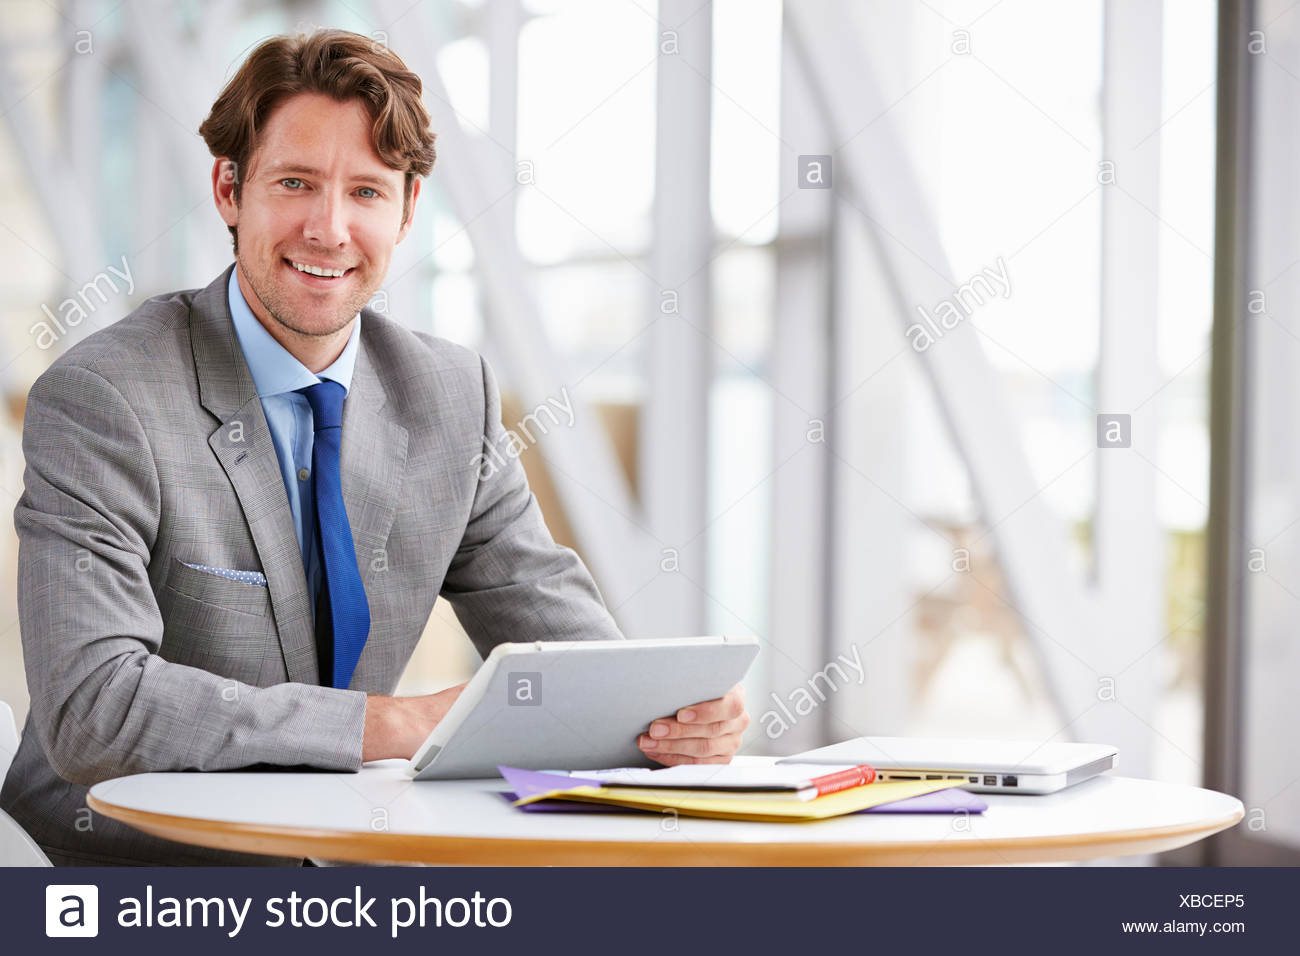 Corporate businessman working with tablet computer - Stock Image